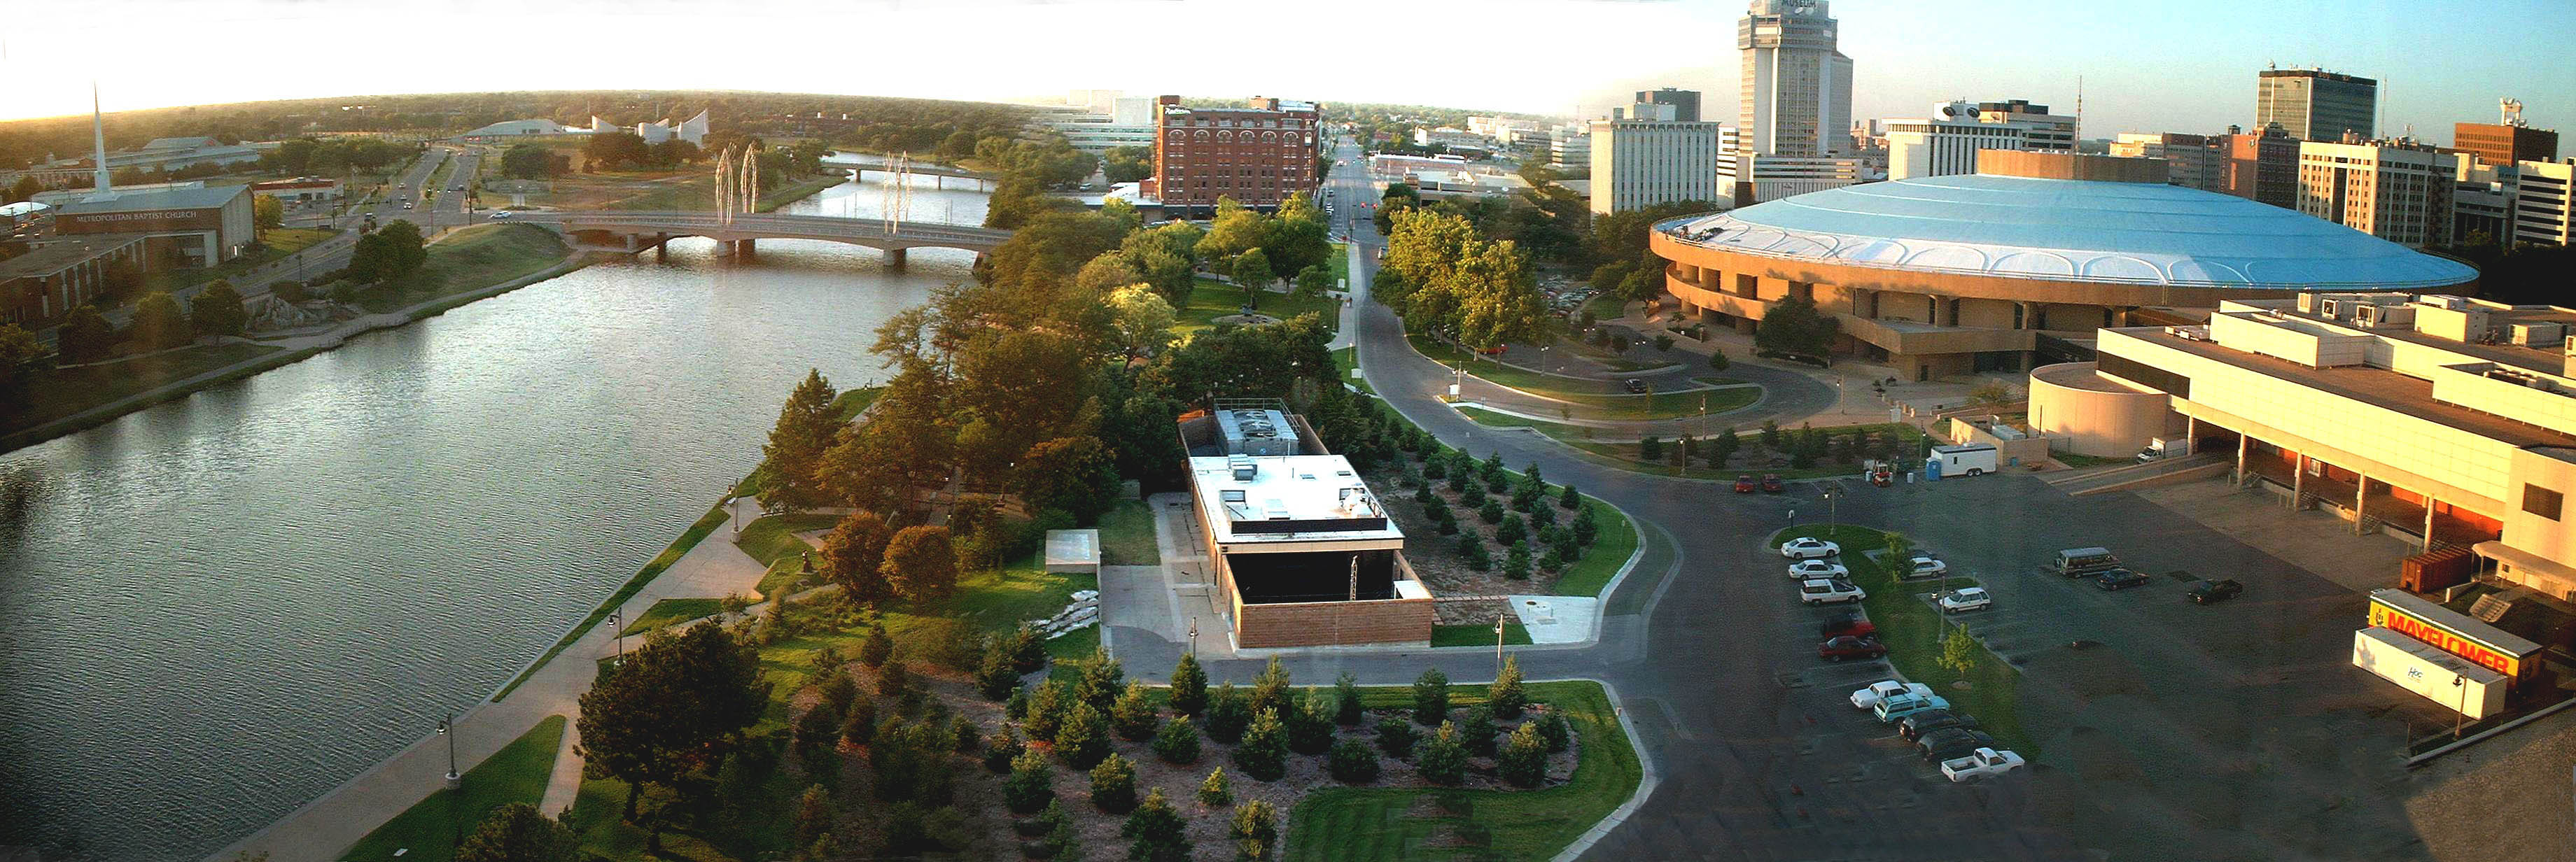 Wichita sits on a river, was a crossroads on cattle drives, hosts rich cultural opportunities and is the home to many successful entrepreneurs